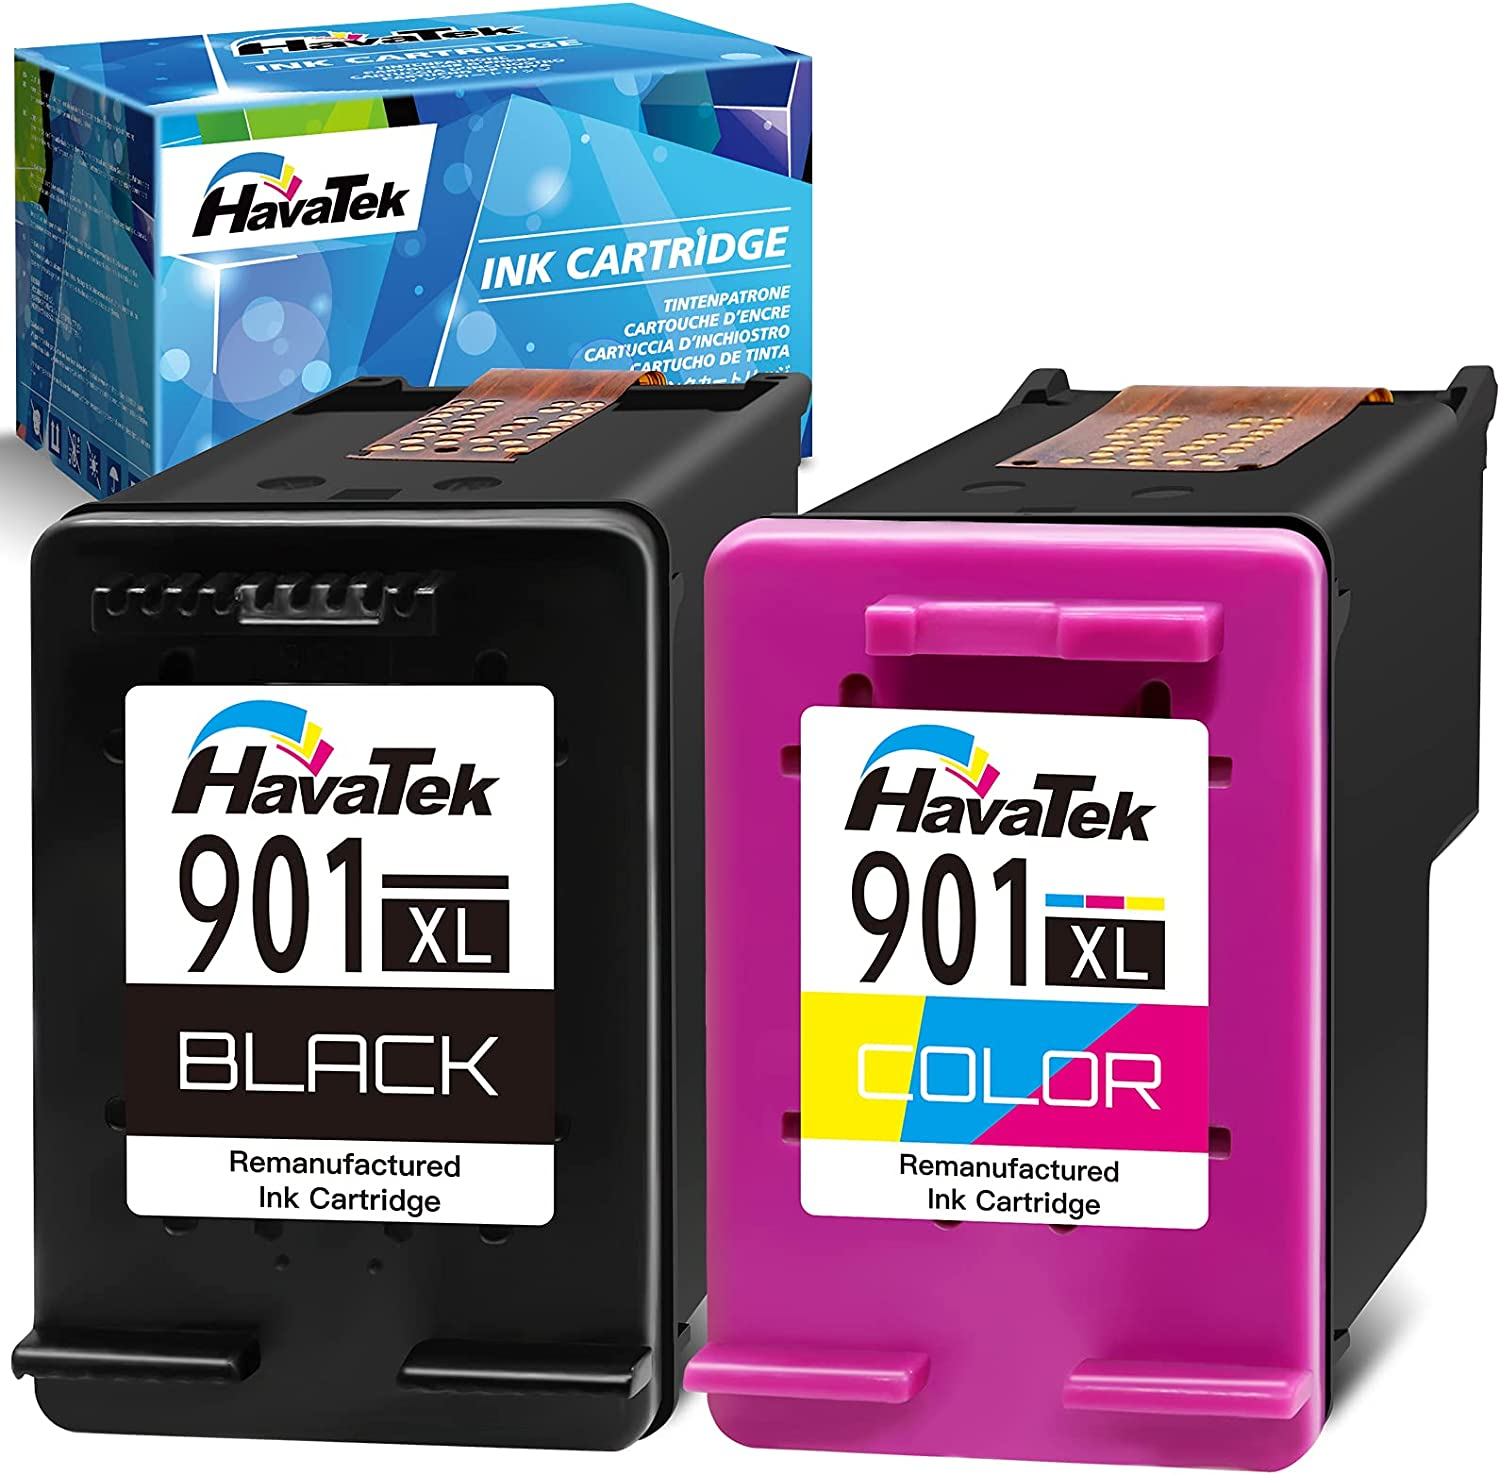 HavaTek Remanufactured Ink Cartridge Replacement for HP 901XL 901 XL (1 Black, 1 Color) Used for OfficeJet J4550 J4680 4500 J4580 J4540 J4500 J4680c G510a G510b G510g G510h G510n J4524 J4525 Printer